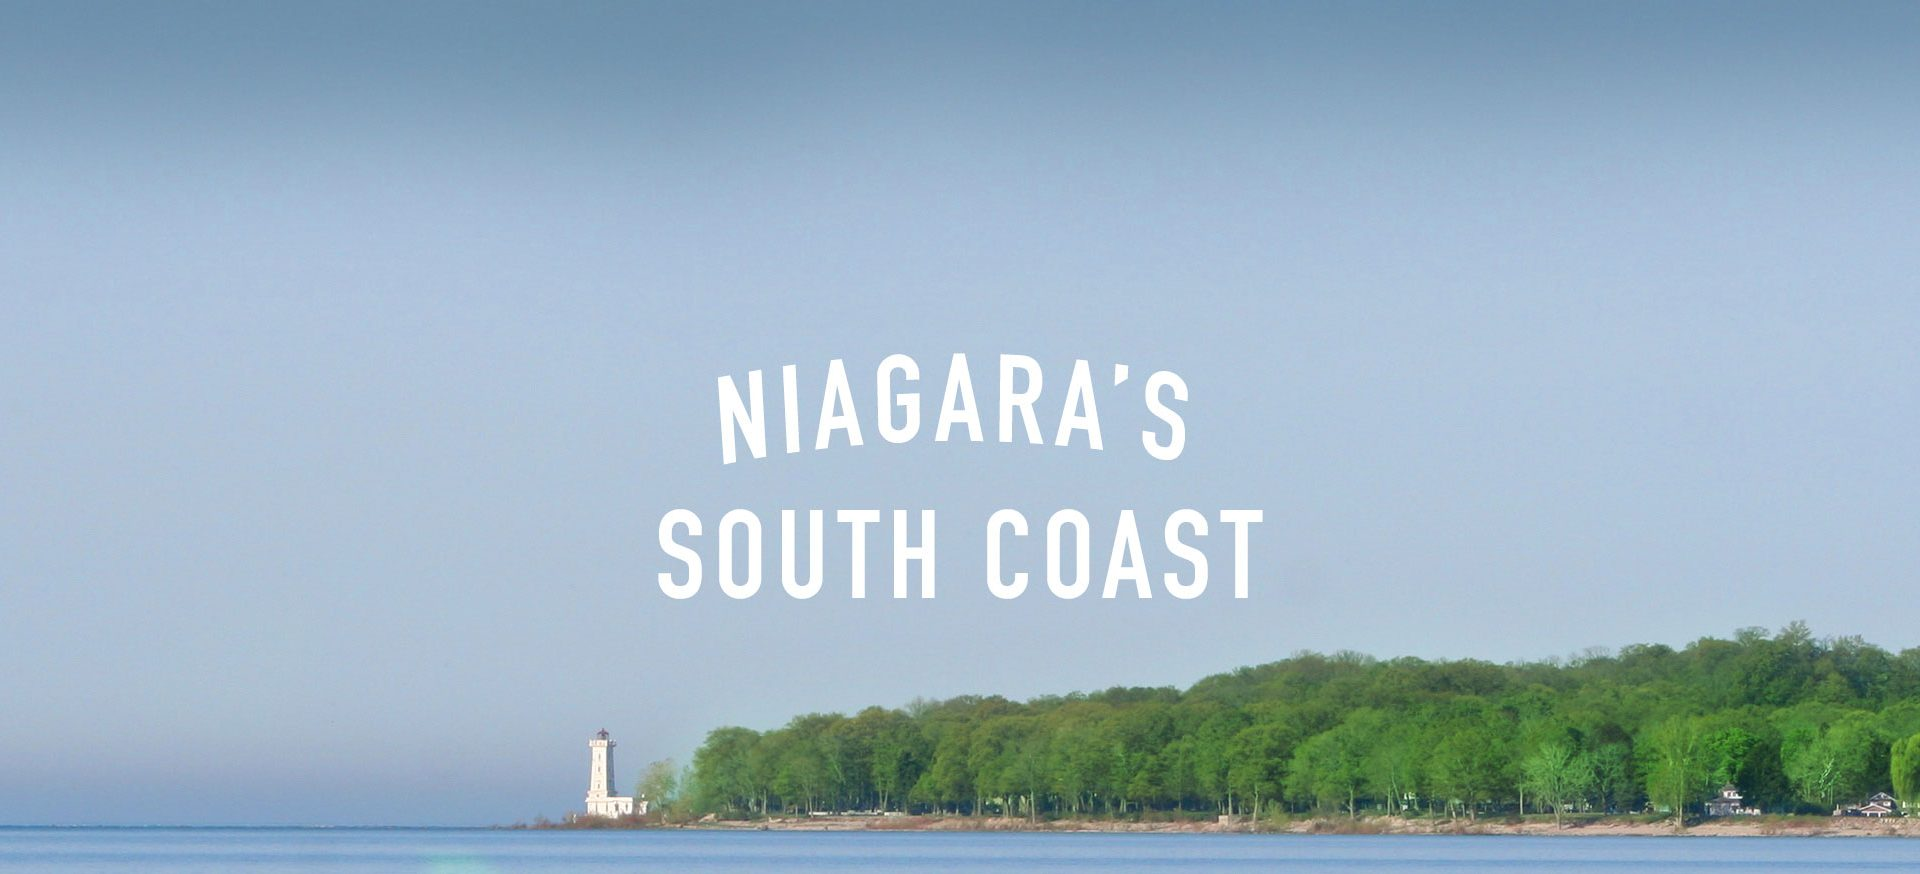 niagaras-south-coast-desktop-header-1920x874